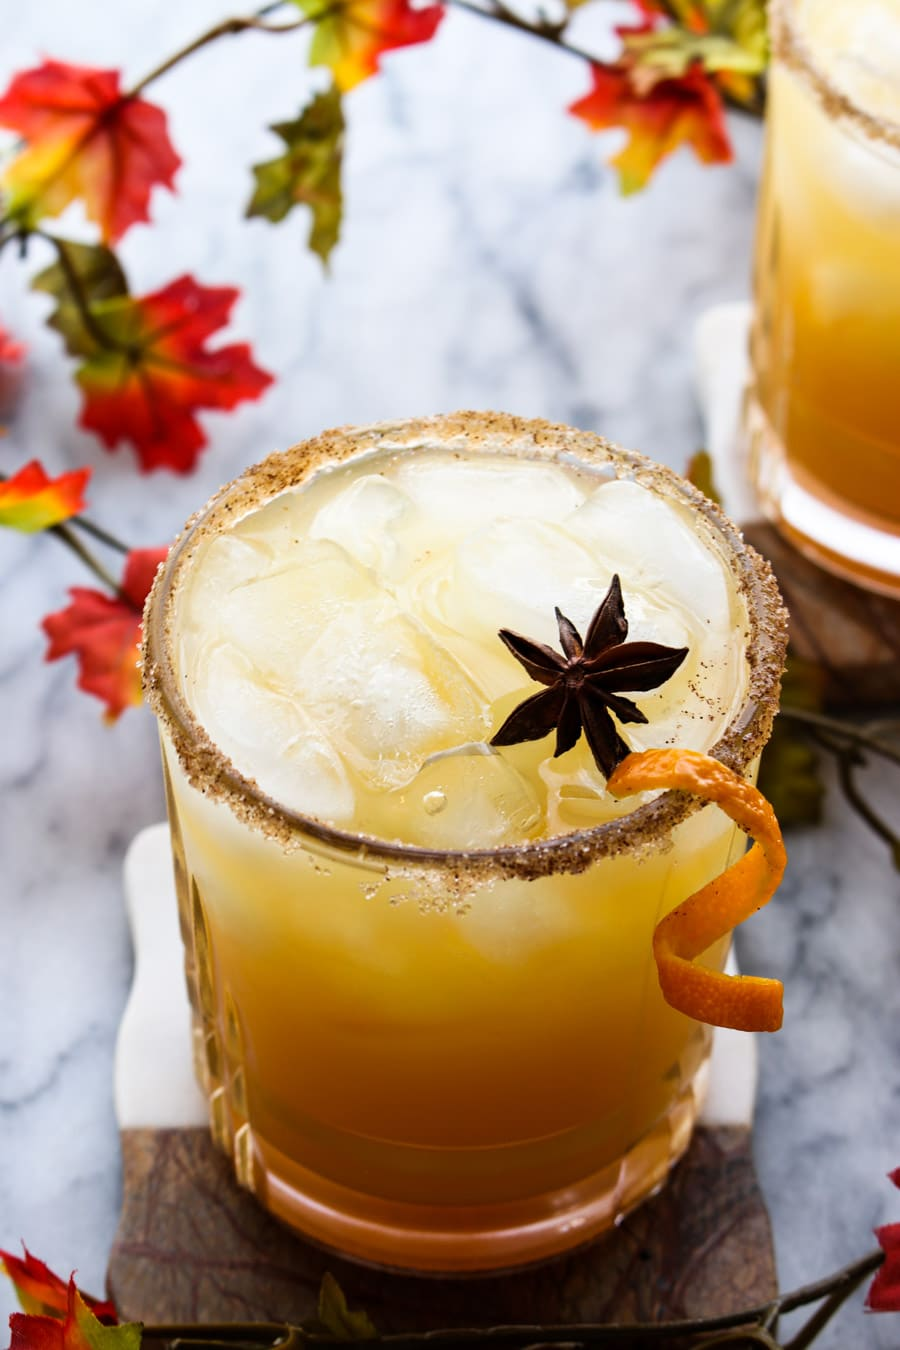 Apple cider margarita with orange peel garnish